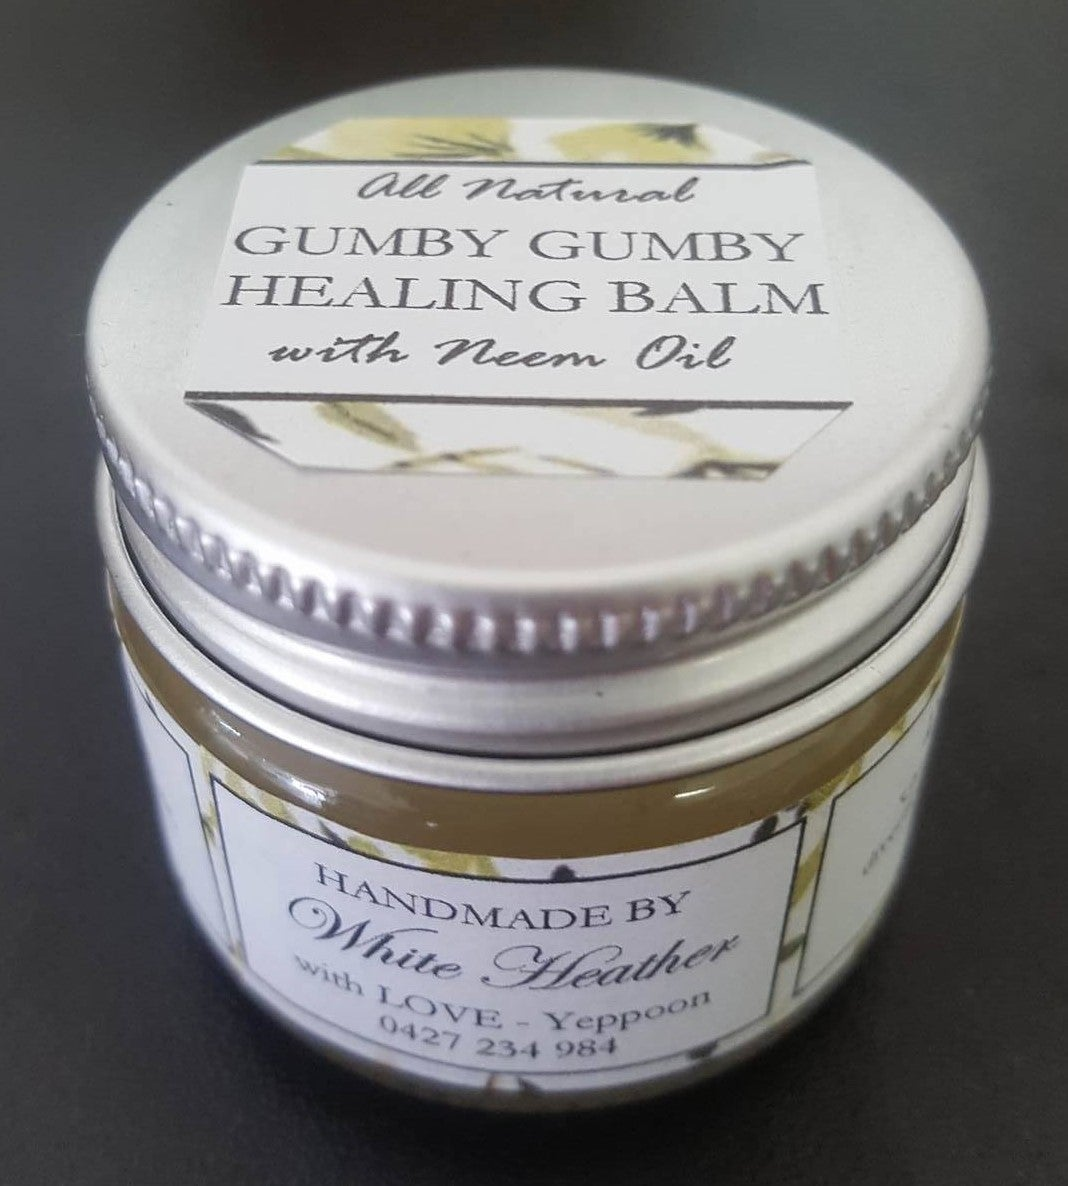 9d6a43ed5 Image of Gumby Gumby Neem Lemon Myrtle Healing Balm